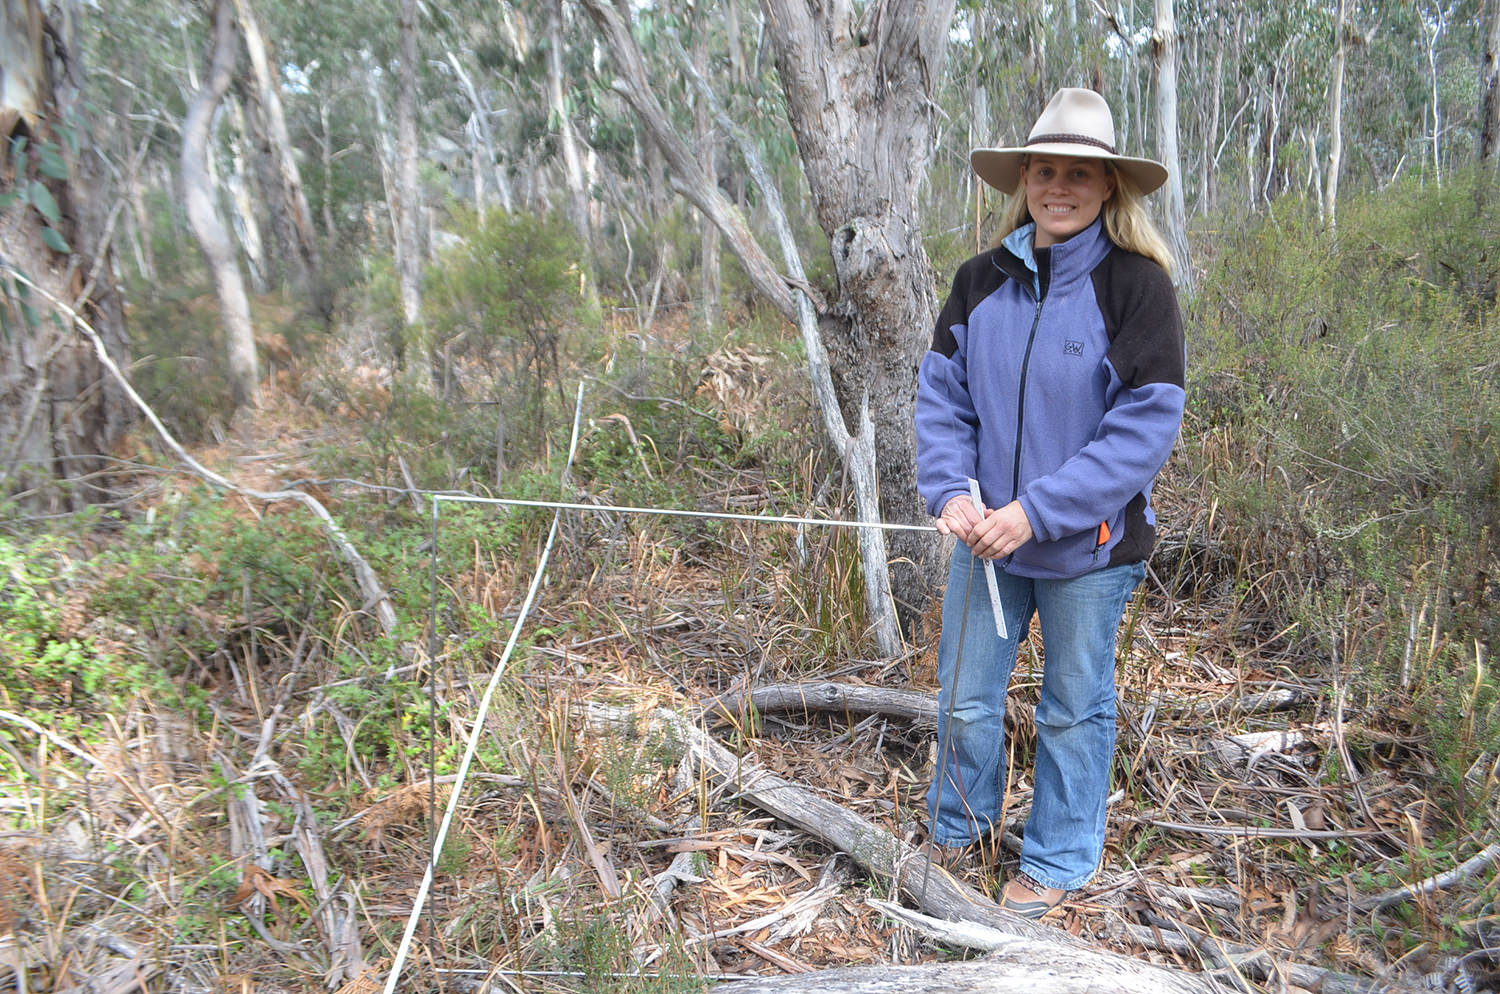 Michelle undertaking ecological monitoring